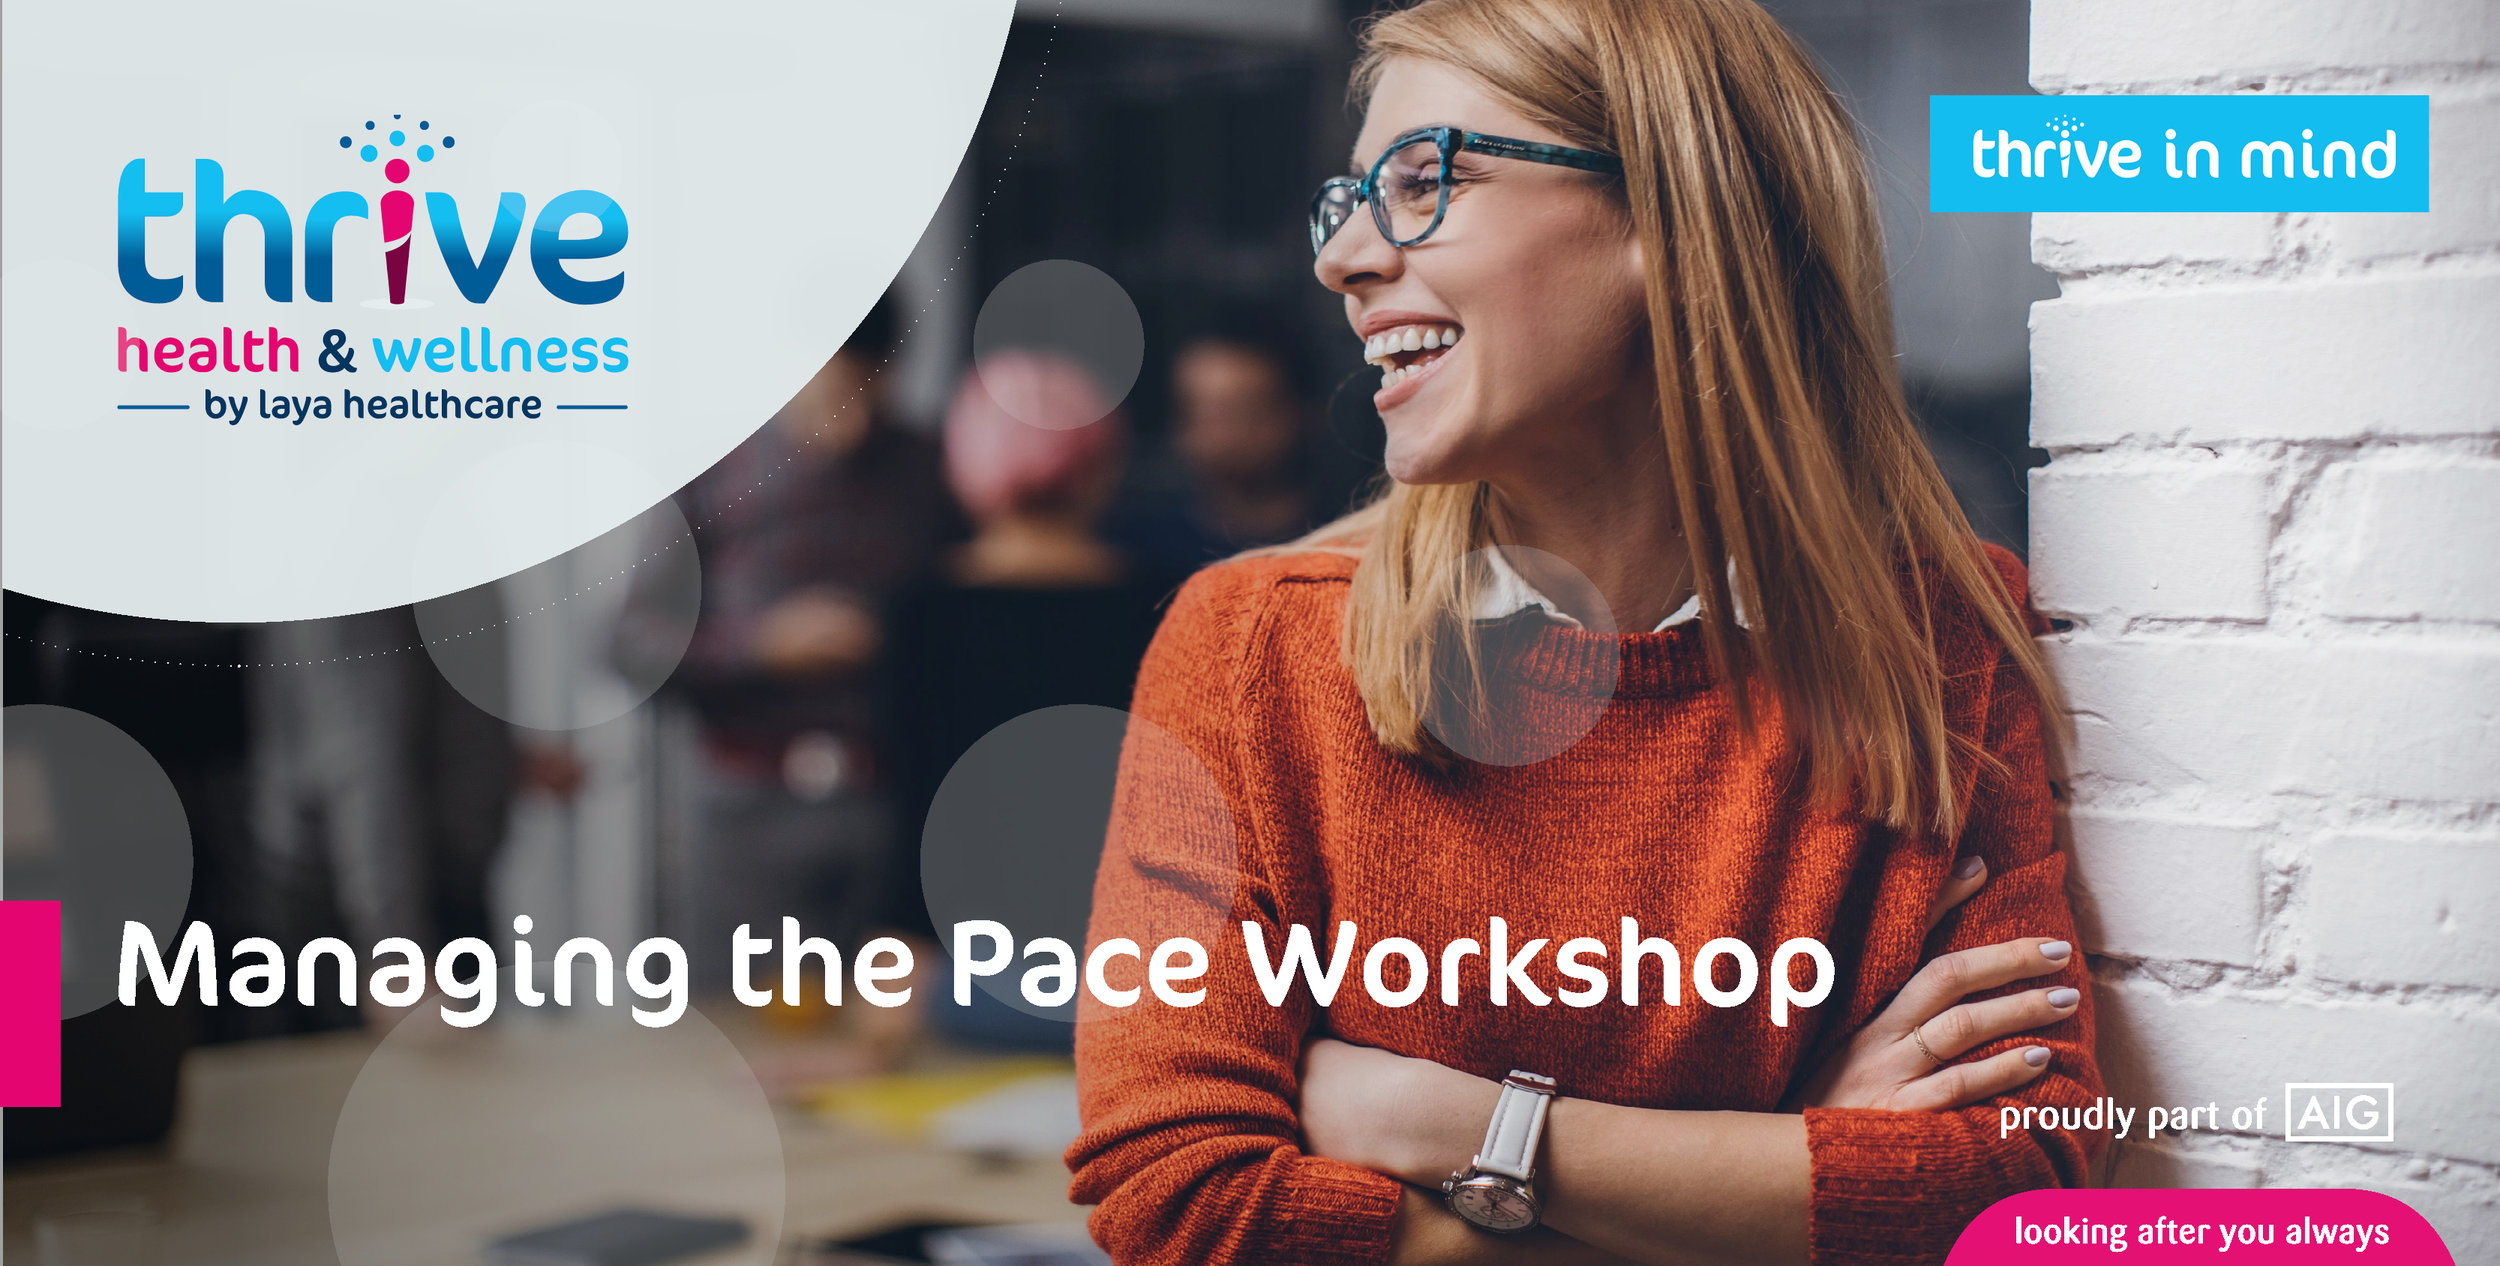 MAILCHIMP TEMPLATE. Managing the Pace Workshop.jpg